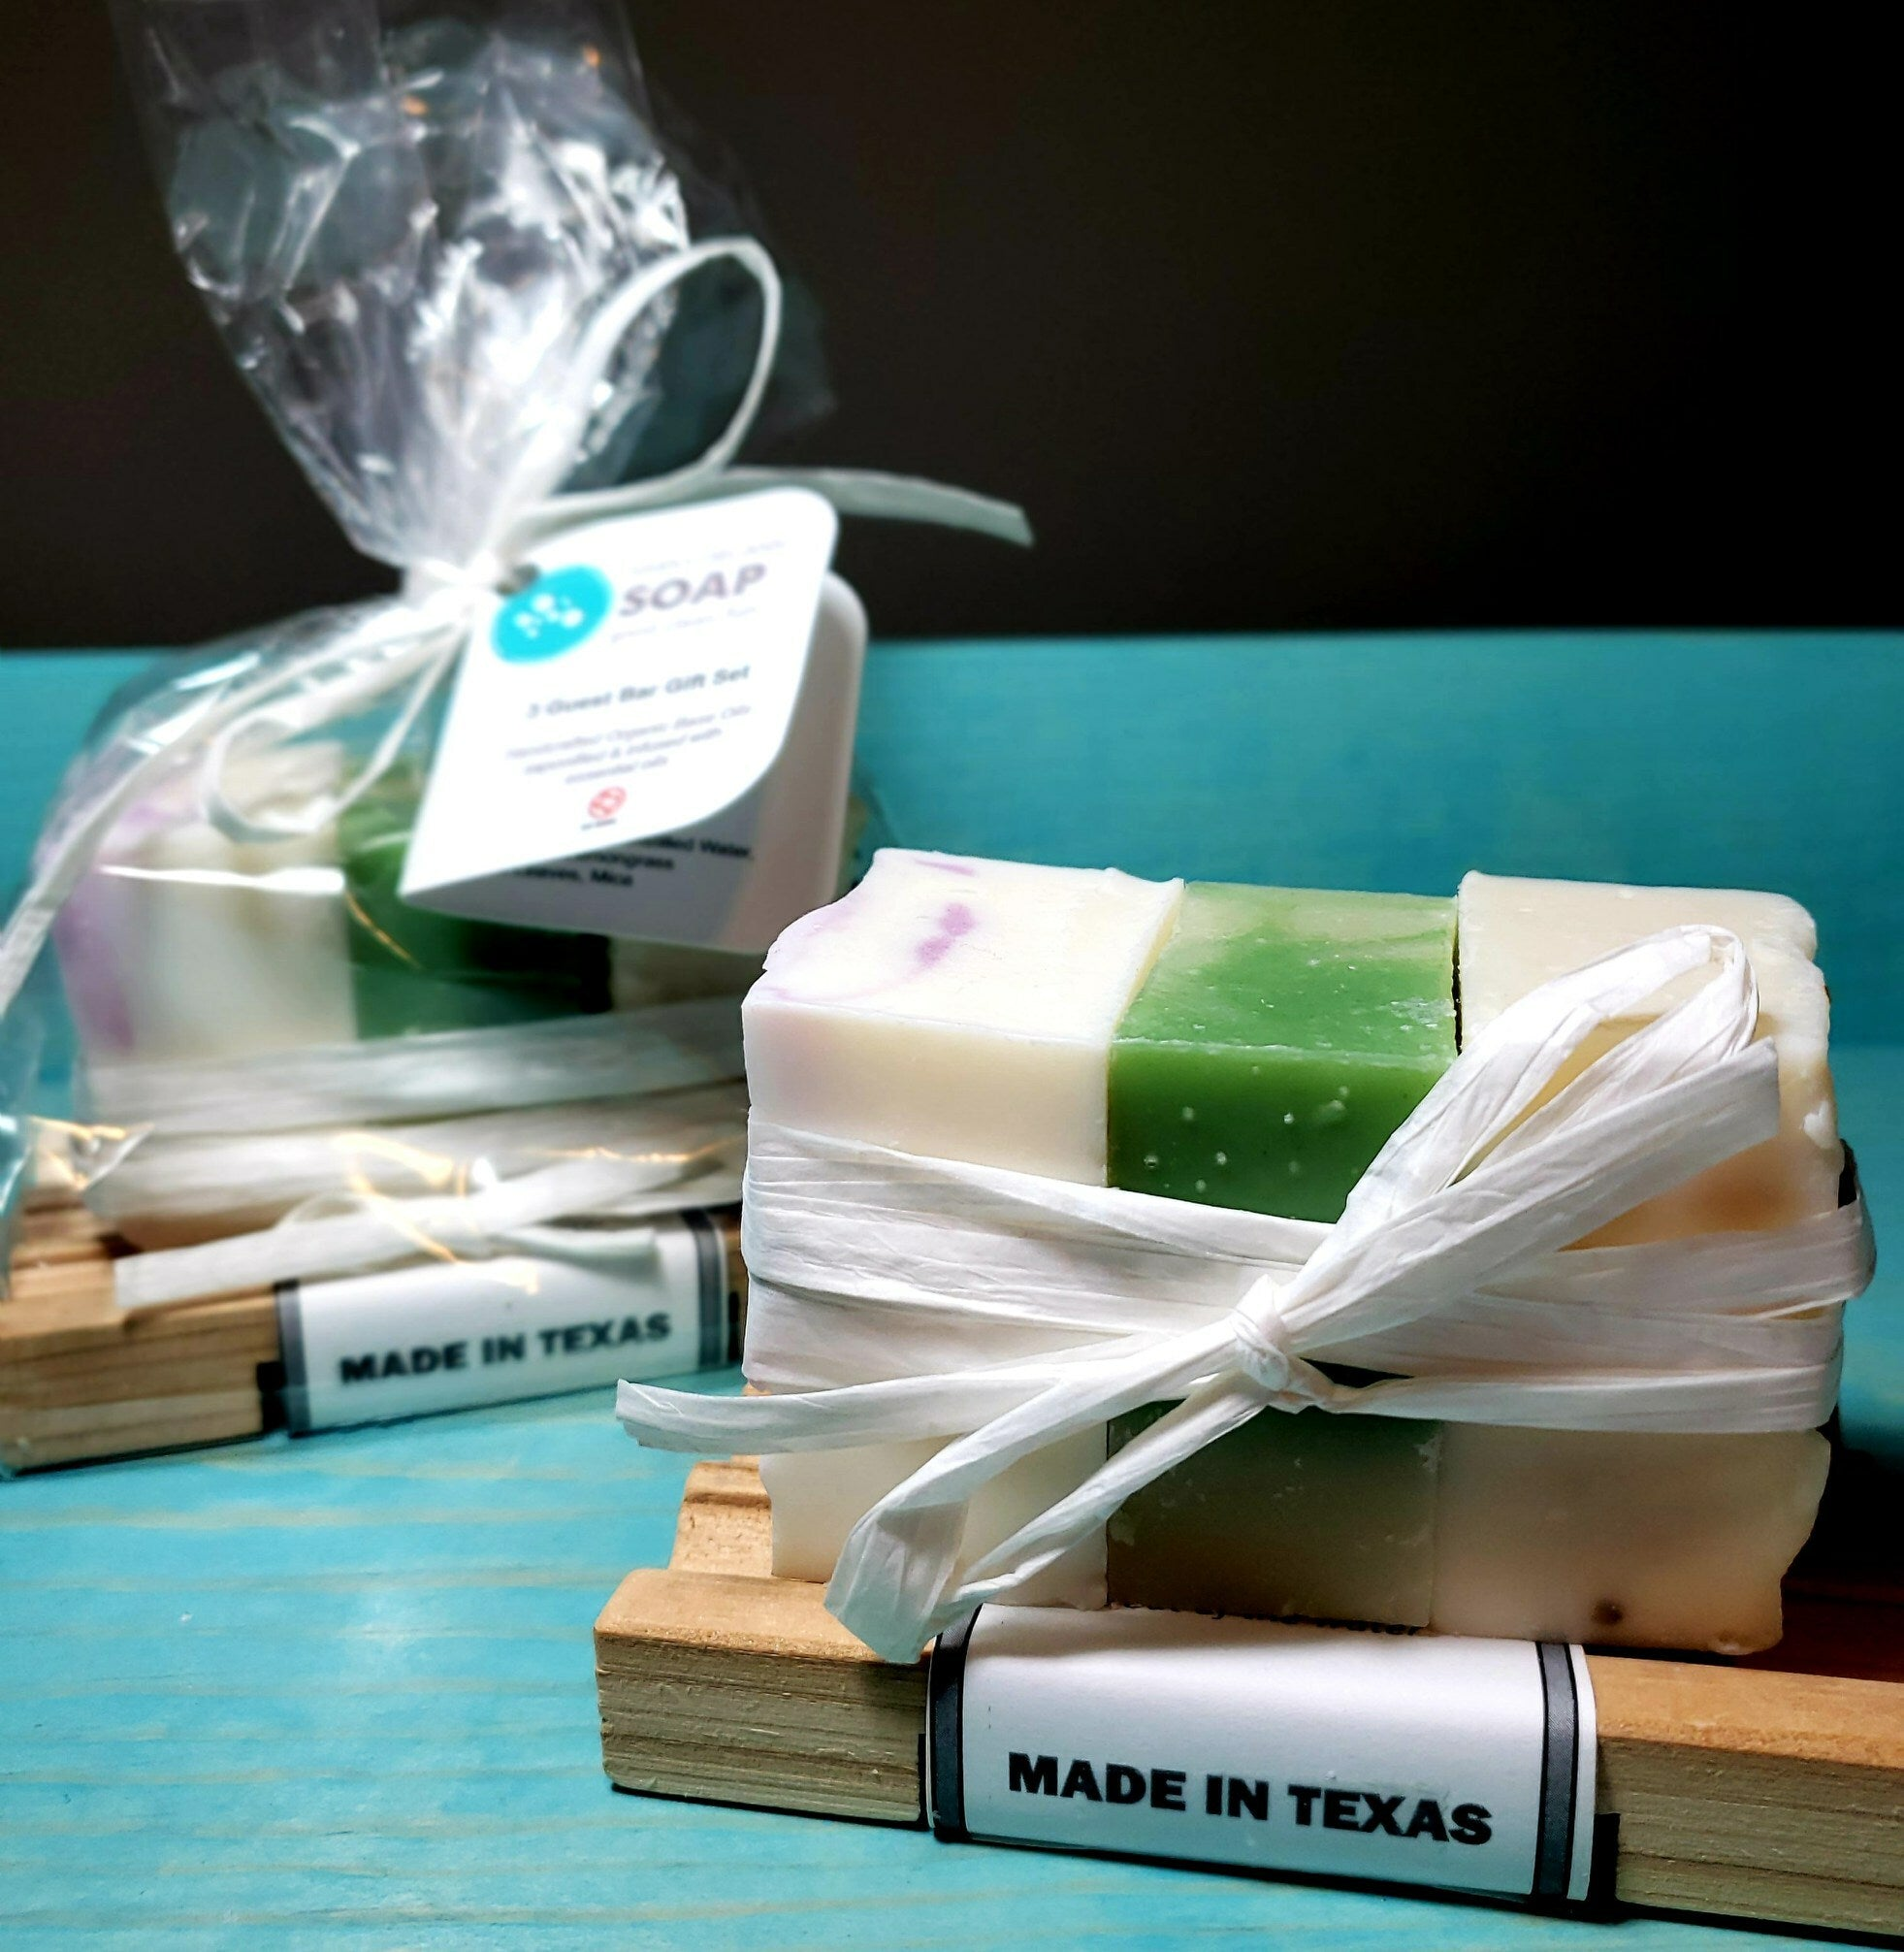 3 Guest Bar Sampler Set with Cedar Soap Dish